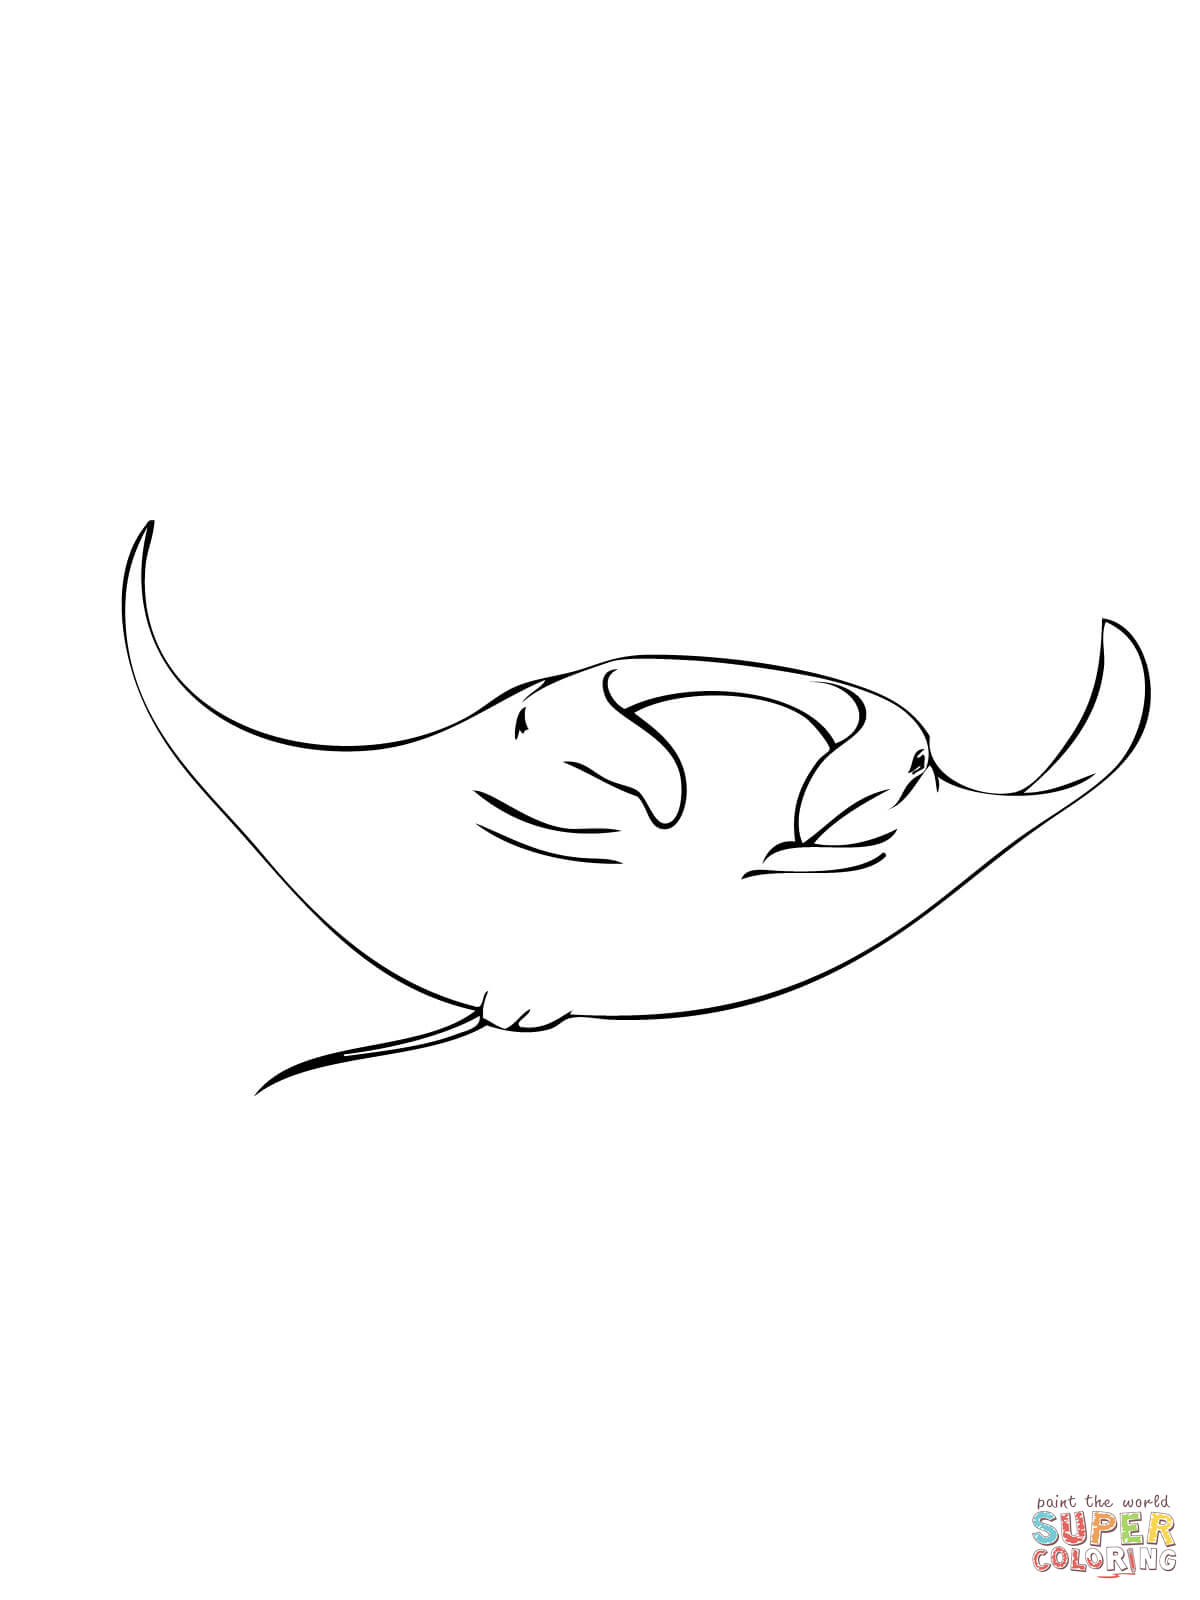 manta ray outline manta ray outline coloring pages manta ray outline ray manta outline